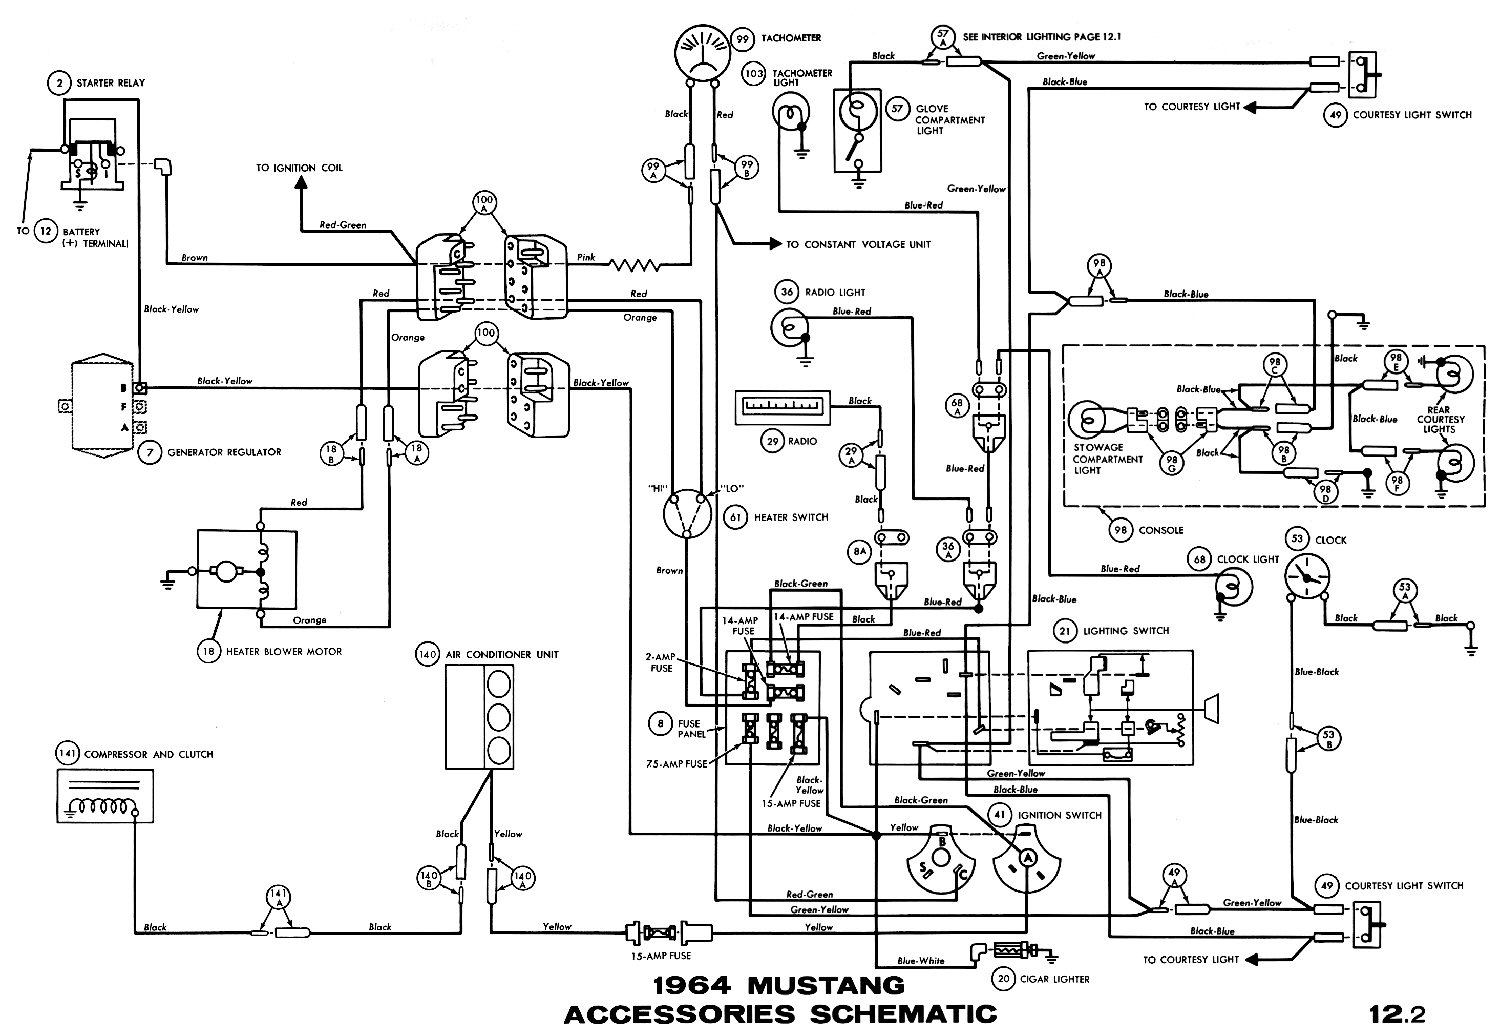 1964m 2015 mustang wiring diagram schematic mustang 2015 \u2022 free wiring 1966 mustang fuse box diagram at bayanpartner.co